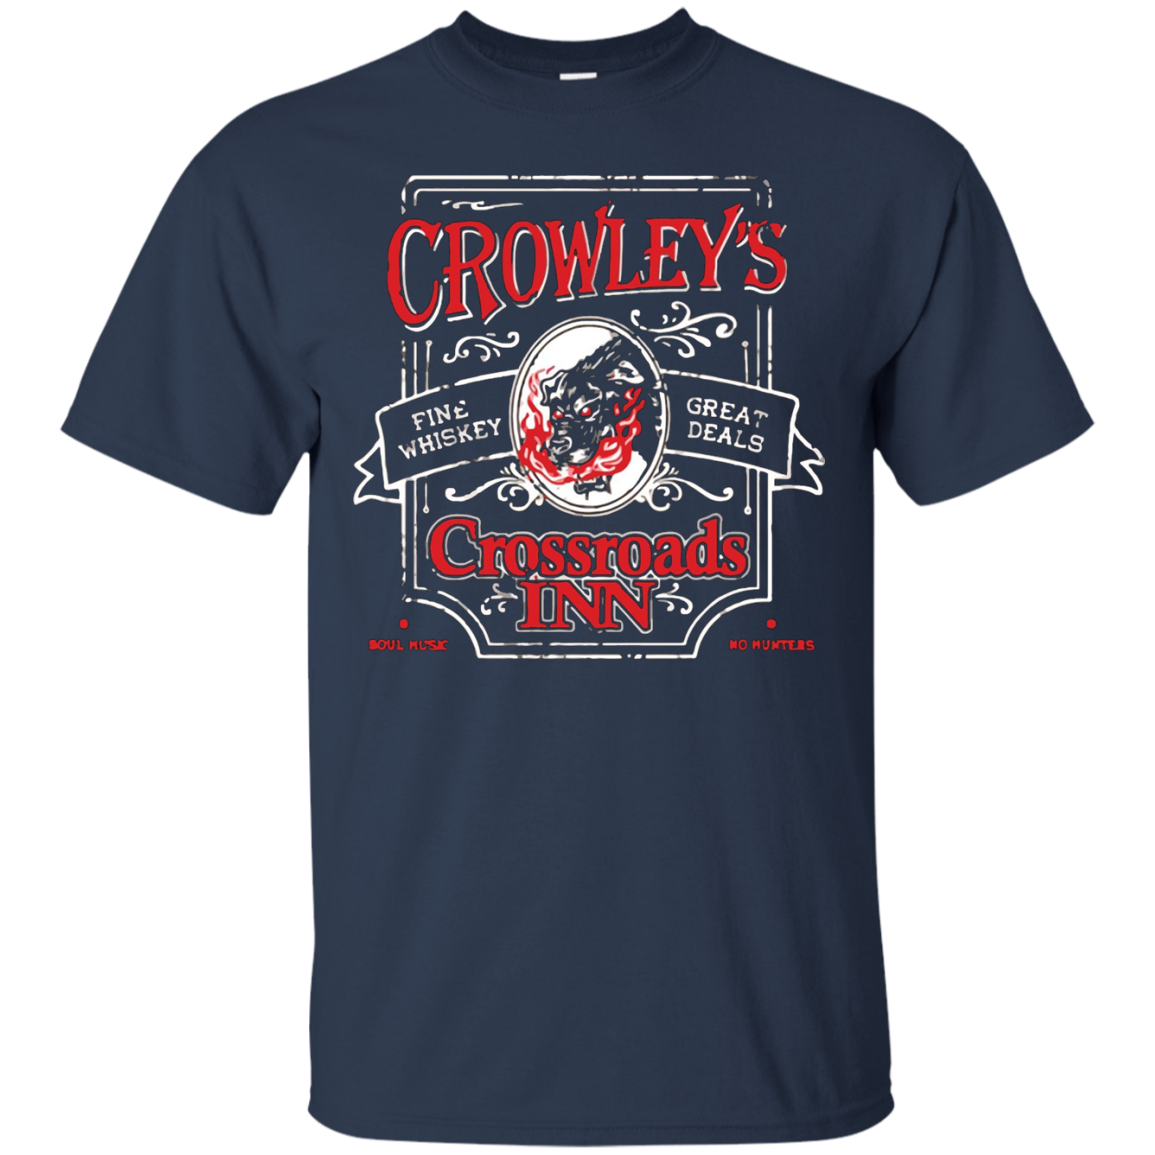 Crowleys Crossroads Inn TShirt